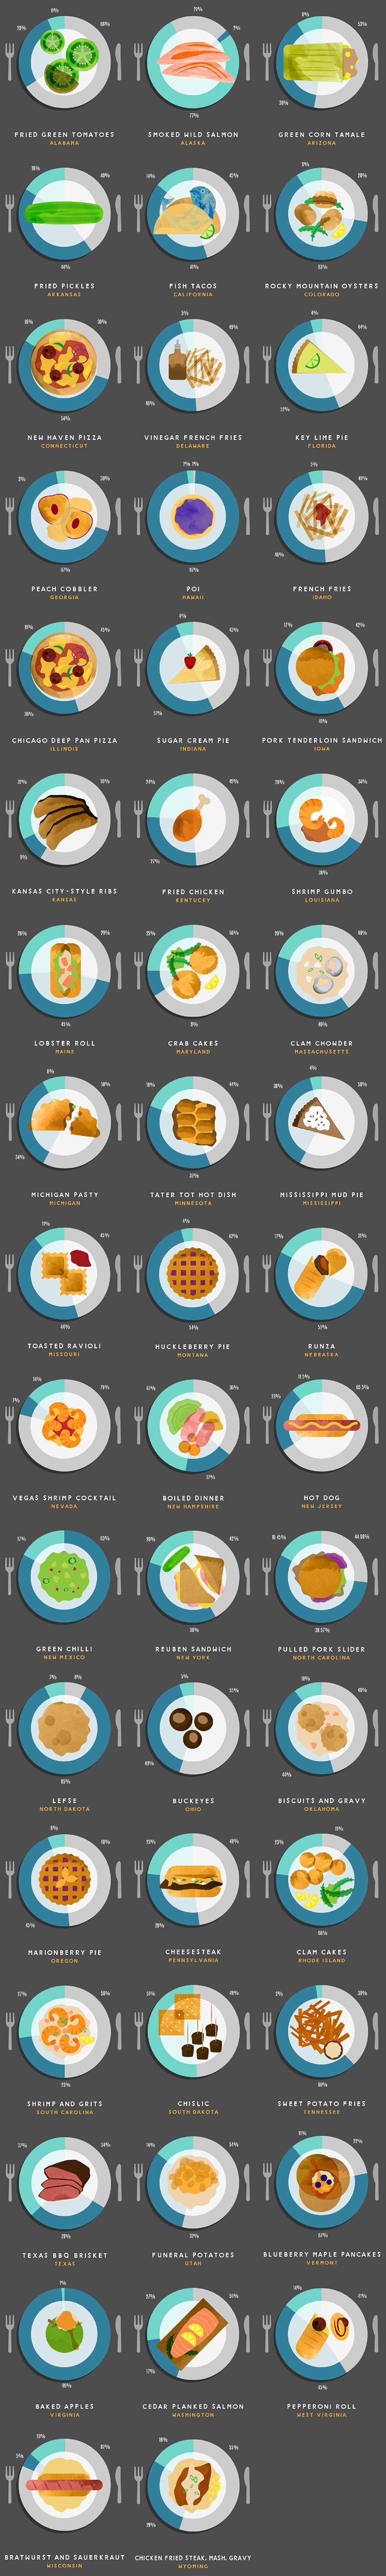 food by state graphic